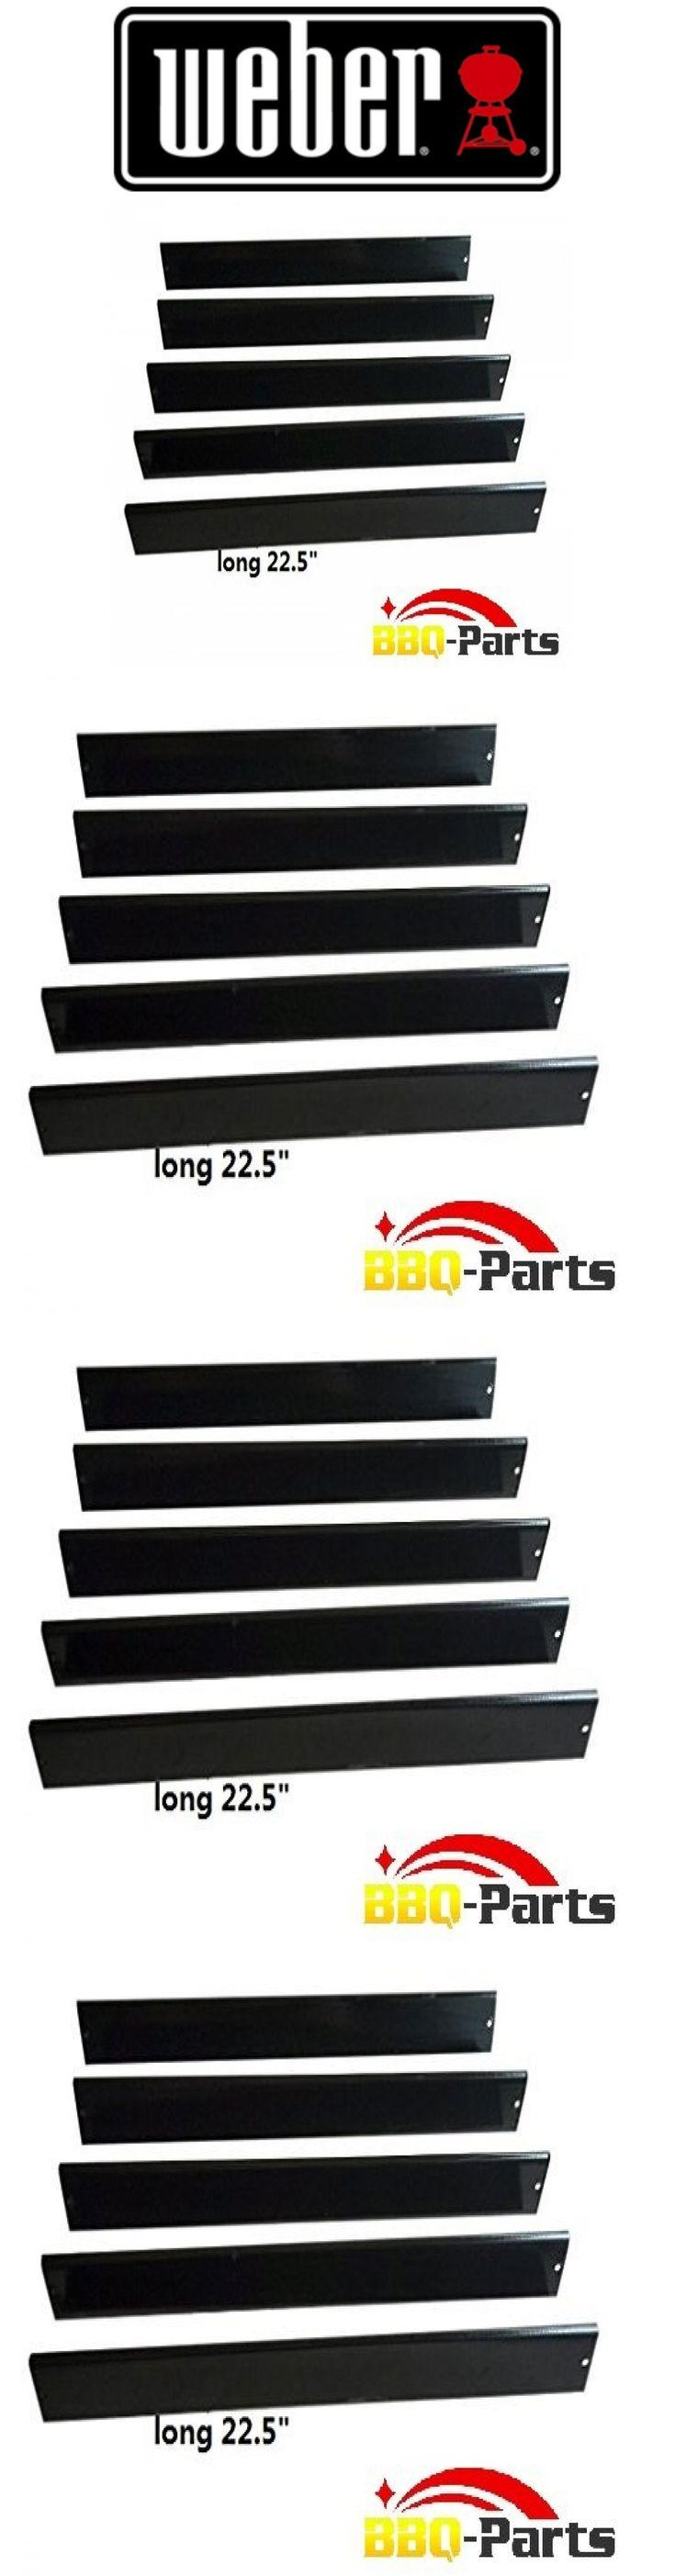 BBQ and Grill Replacement Parts 177018: Weber Set Of 5 Flavorizer Bars 7537 7536 Porcelain Steel Bbq Gas Grill Parts New -> BUY IT NOW ONLY: $42.98 on eBay!